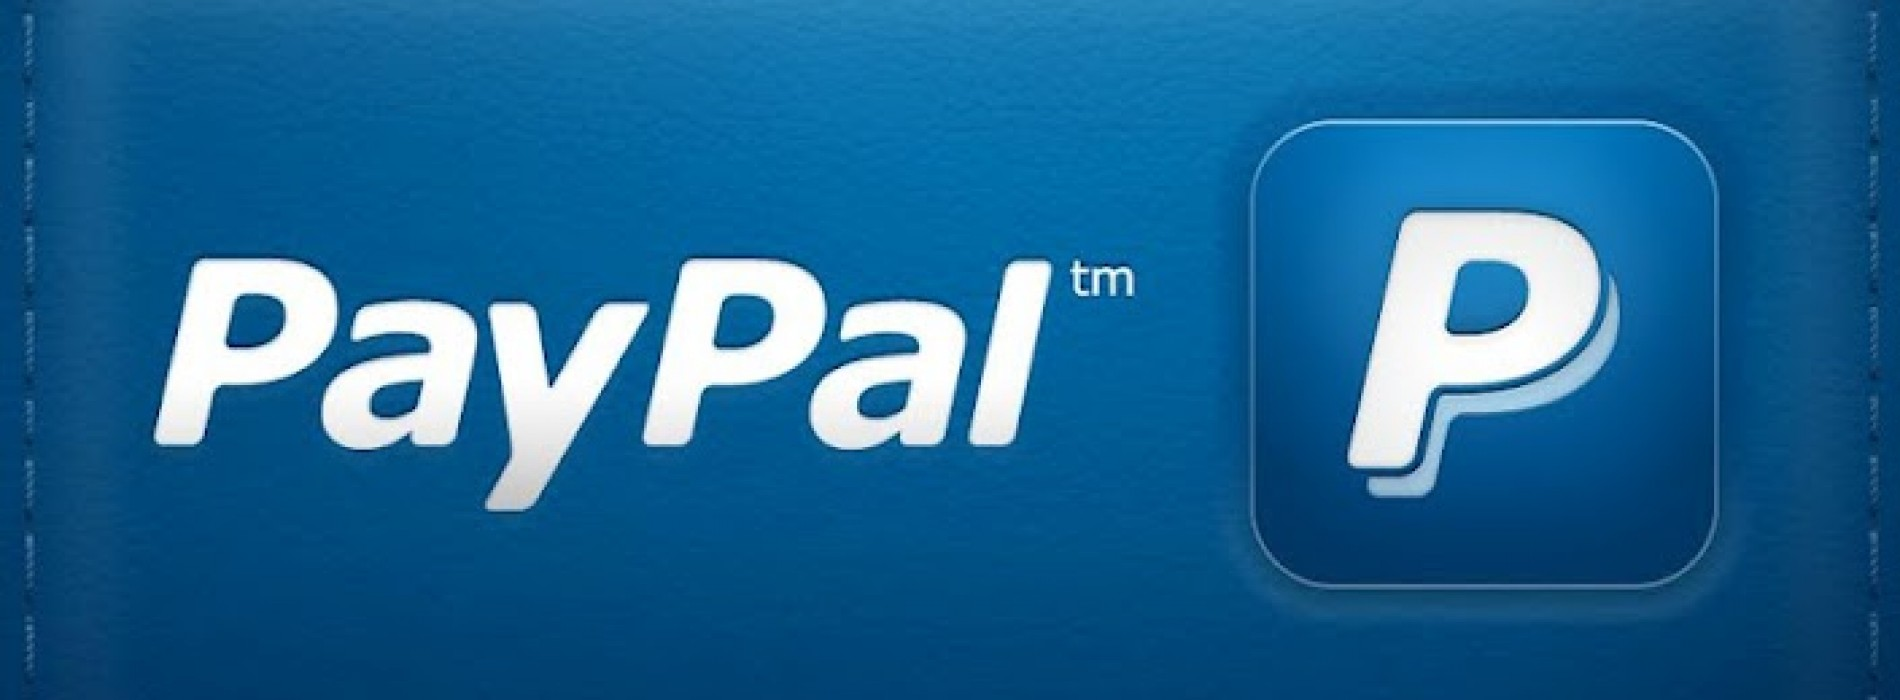 Updated Paypal app, new UI